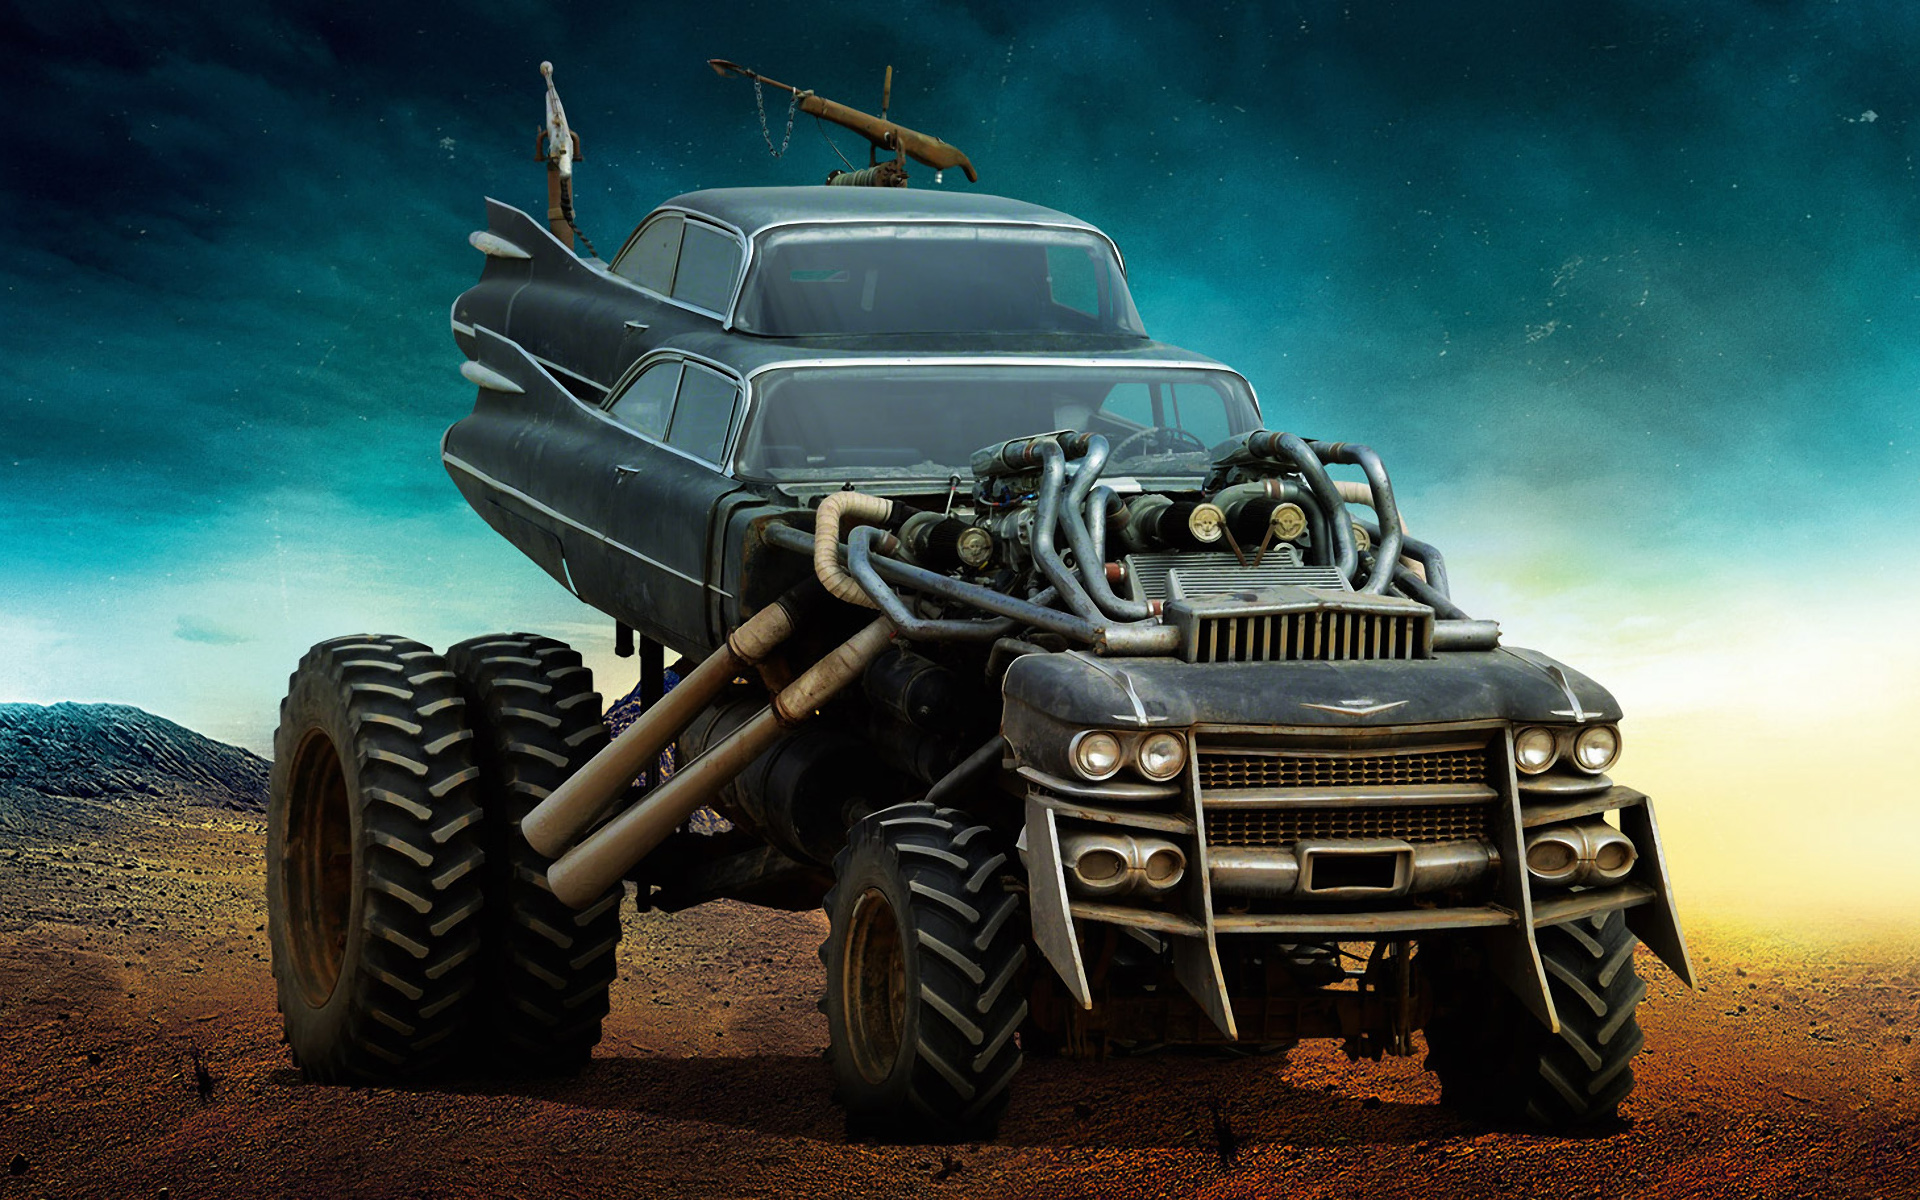 Mad Max Wallpaper Images – Epic Wallpaperz